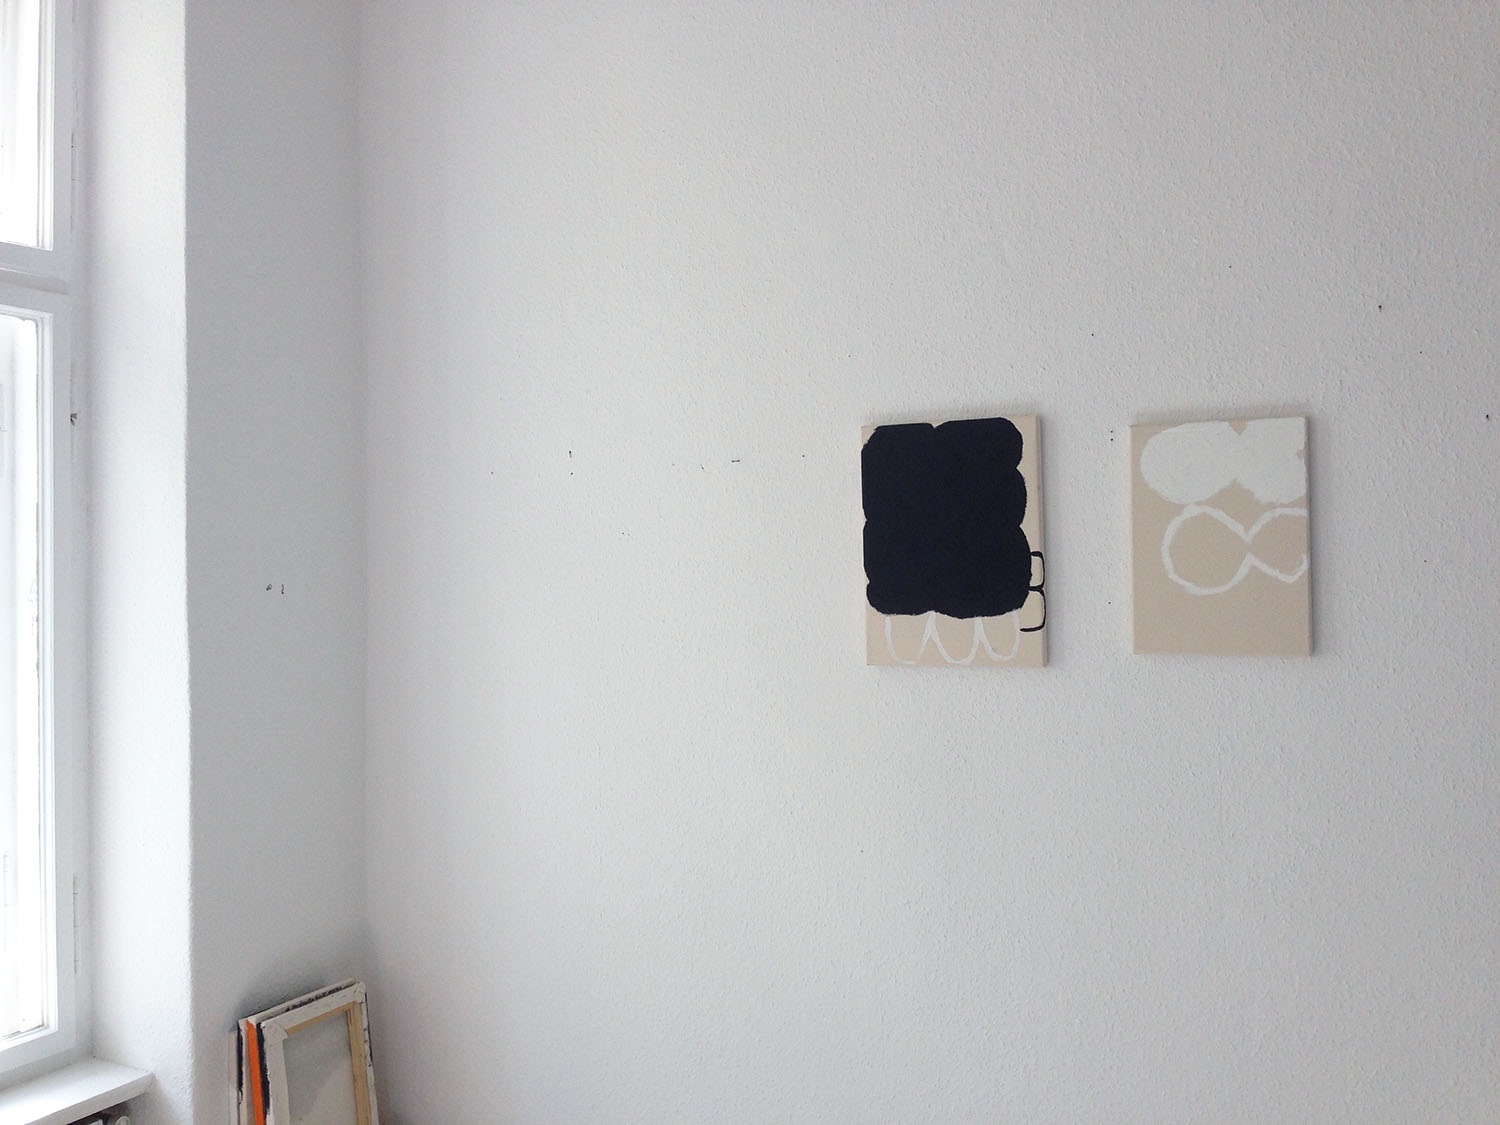 Left:  Untitled , 2016 oil-stick and acrylic spray-paint on raw cotton canvas 35 x 24 cm ( H x W cm) 13.77 x 9.44 inches  Available for purchase   Right:  Untitled , 2017 oil-stick on raw cotton canvas 35 x 25 cm (H x W cm) 13.77 x 9.84 inches  Available for purchase